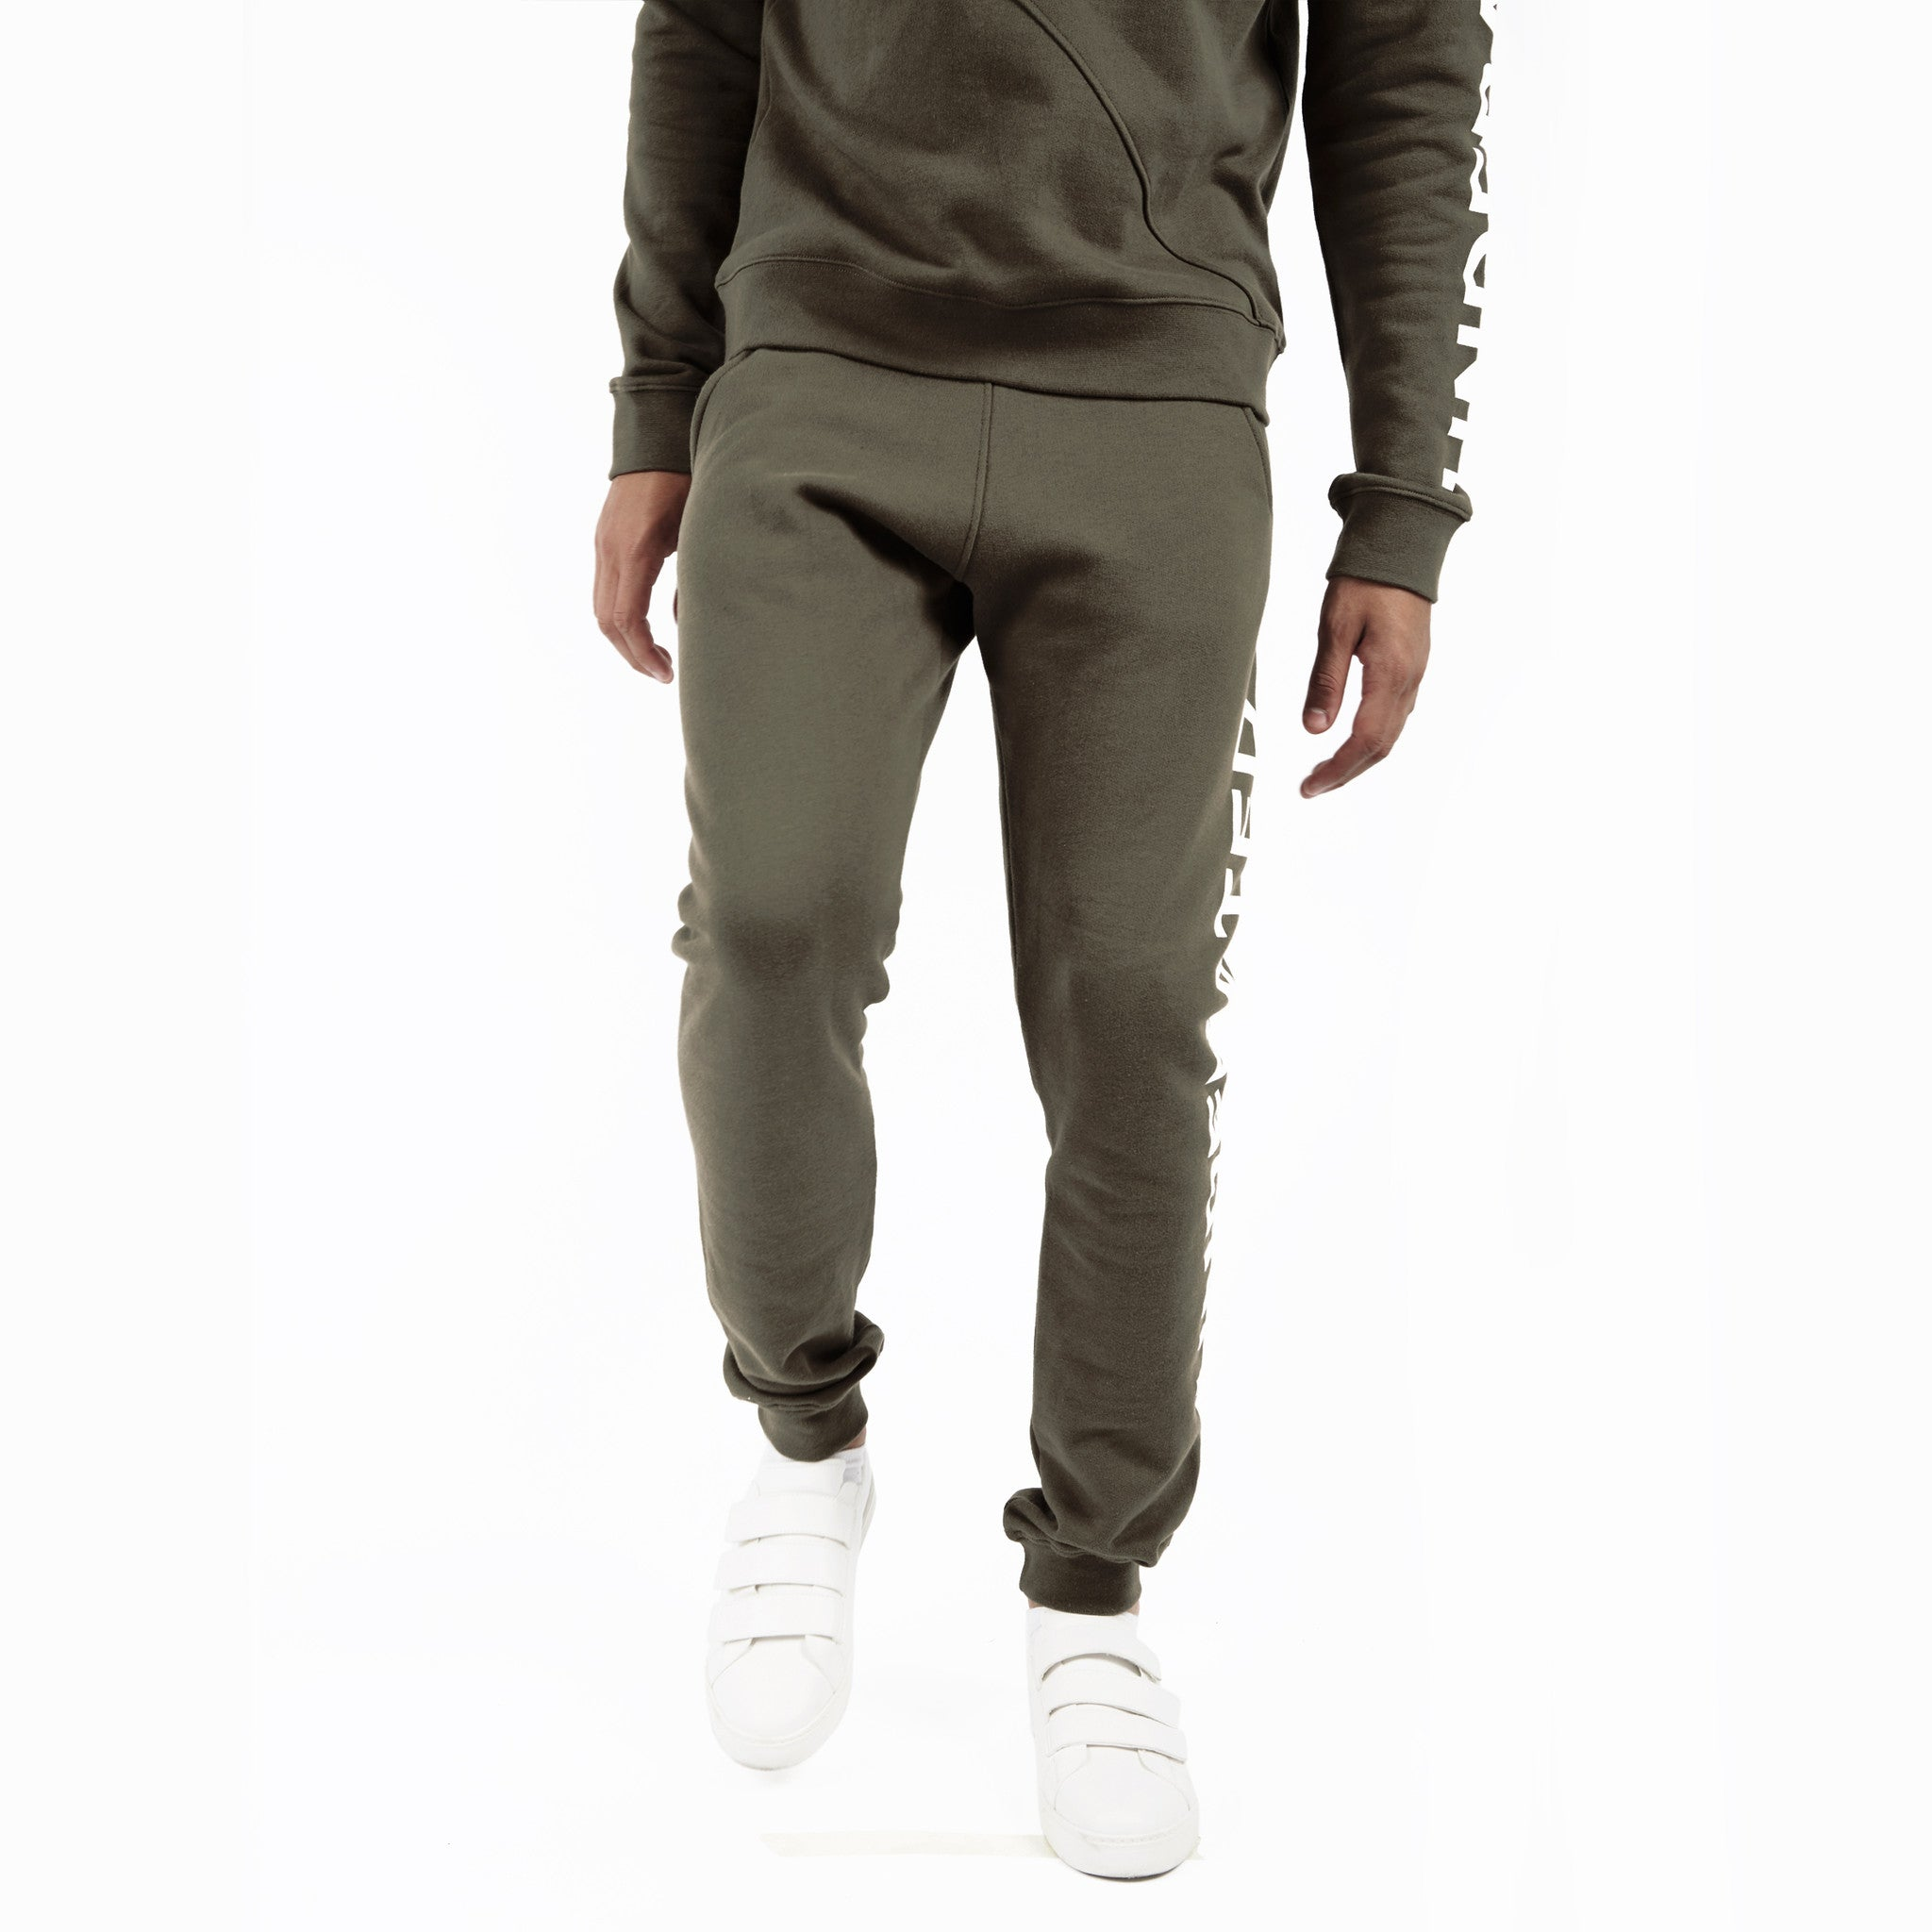 TR351 Essential Printed Joggers - Khaki - underated london - underatedco - 5